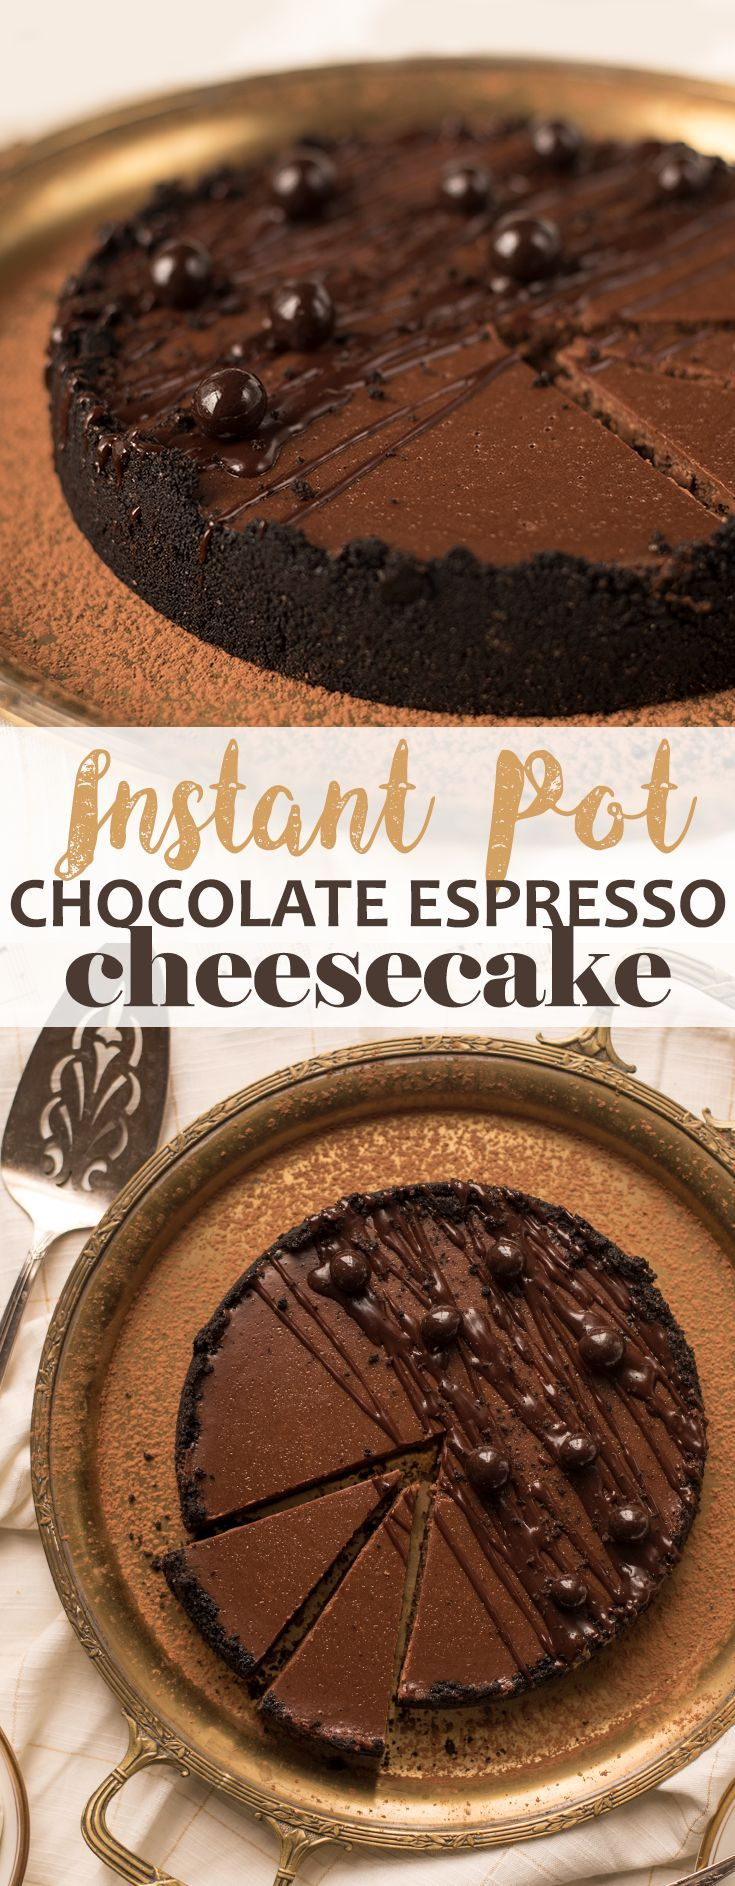 Follow our step-by-step instructions to make this flawless Instant Pot cheesecake with an Oreo crust and a creamy chocolate espresso filling. Give the love of your life a taste of indulgence!